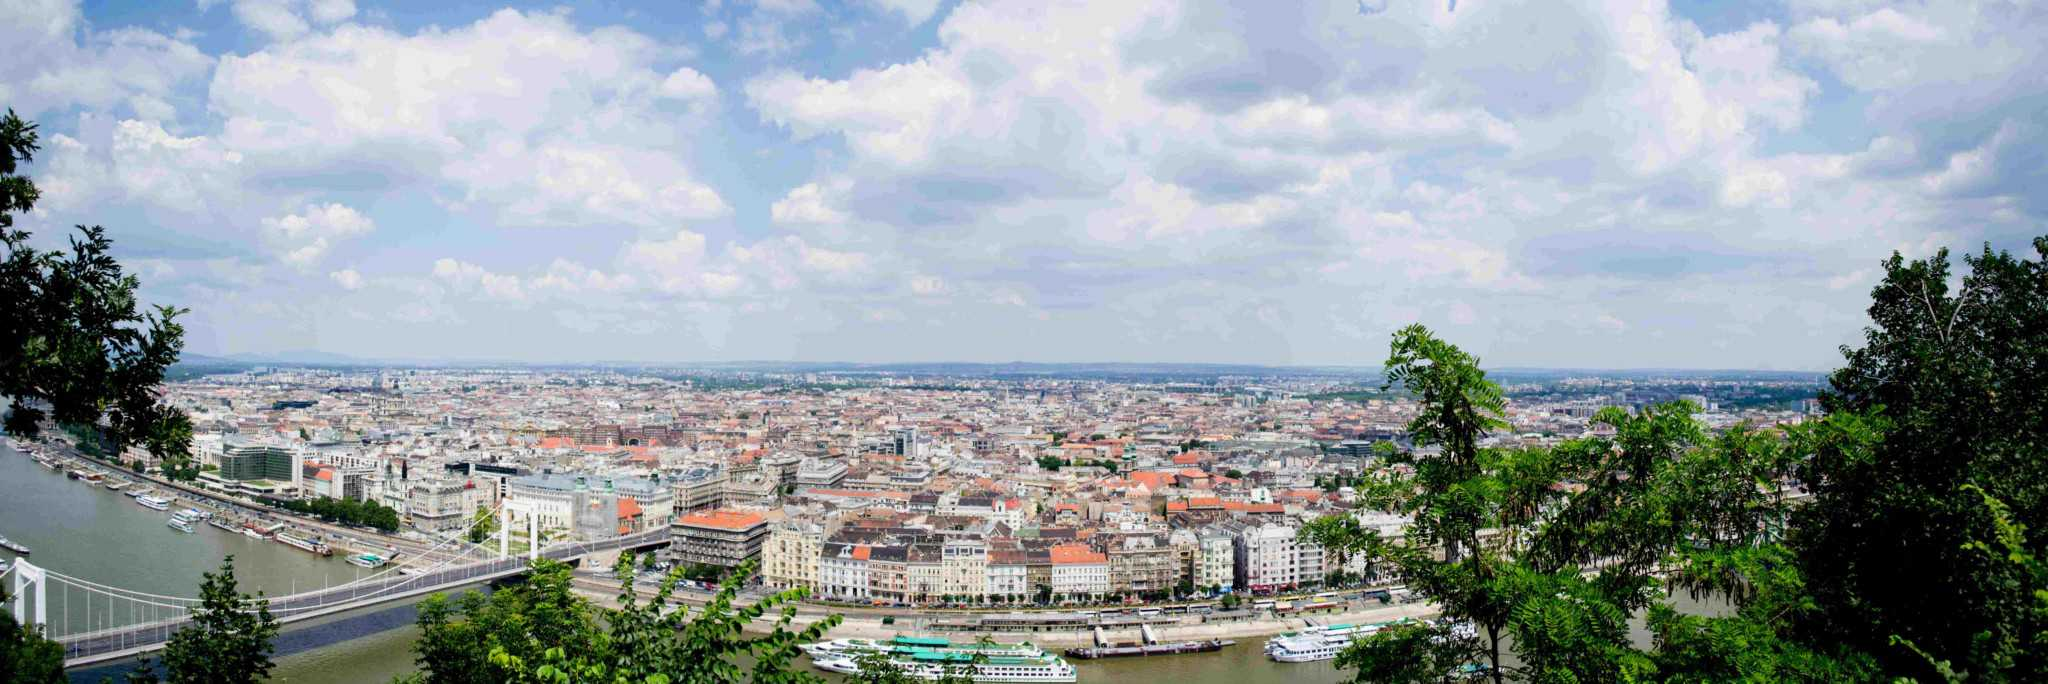 10 Favourite Things to Do in Budapest